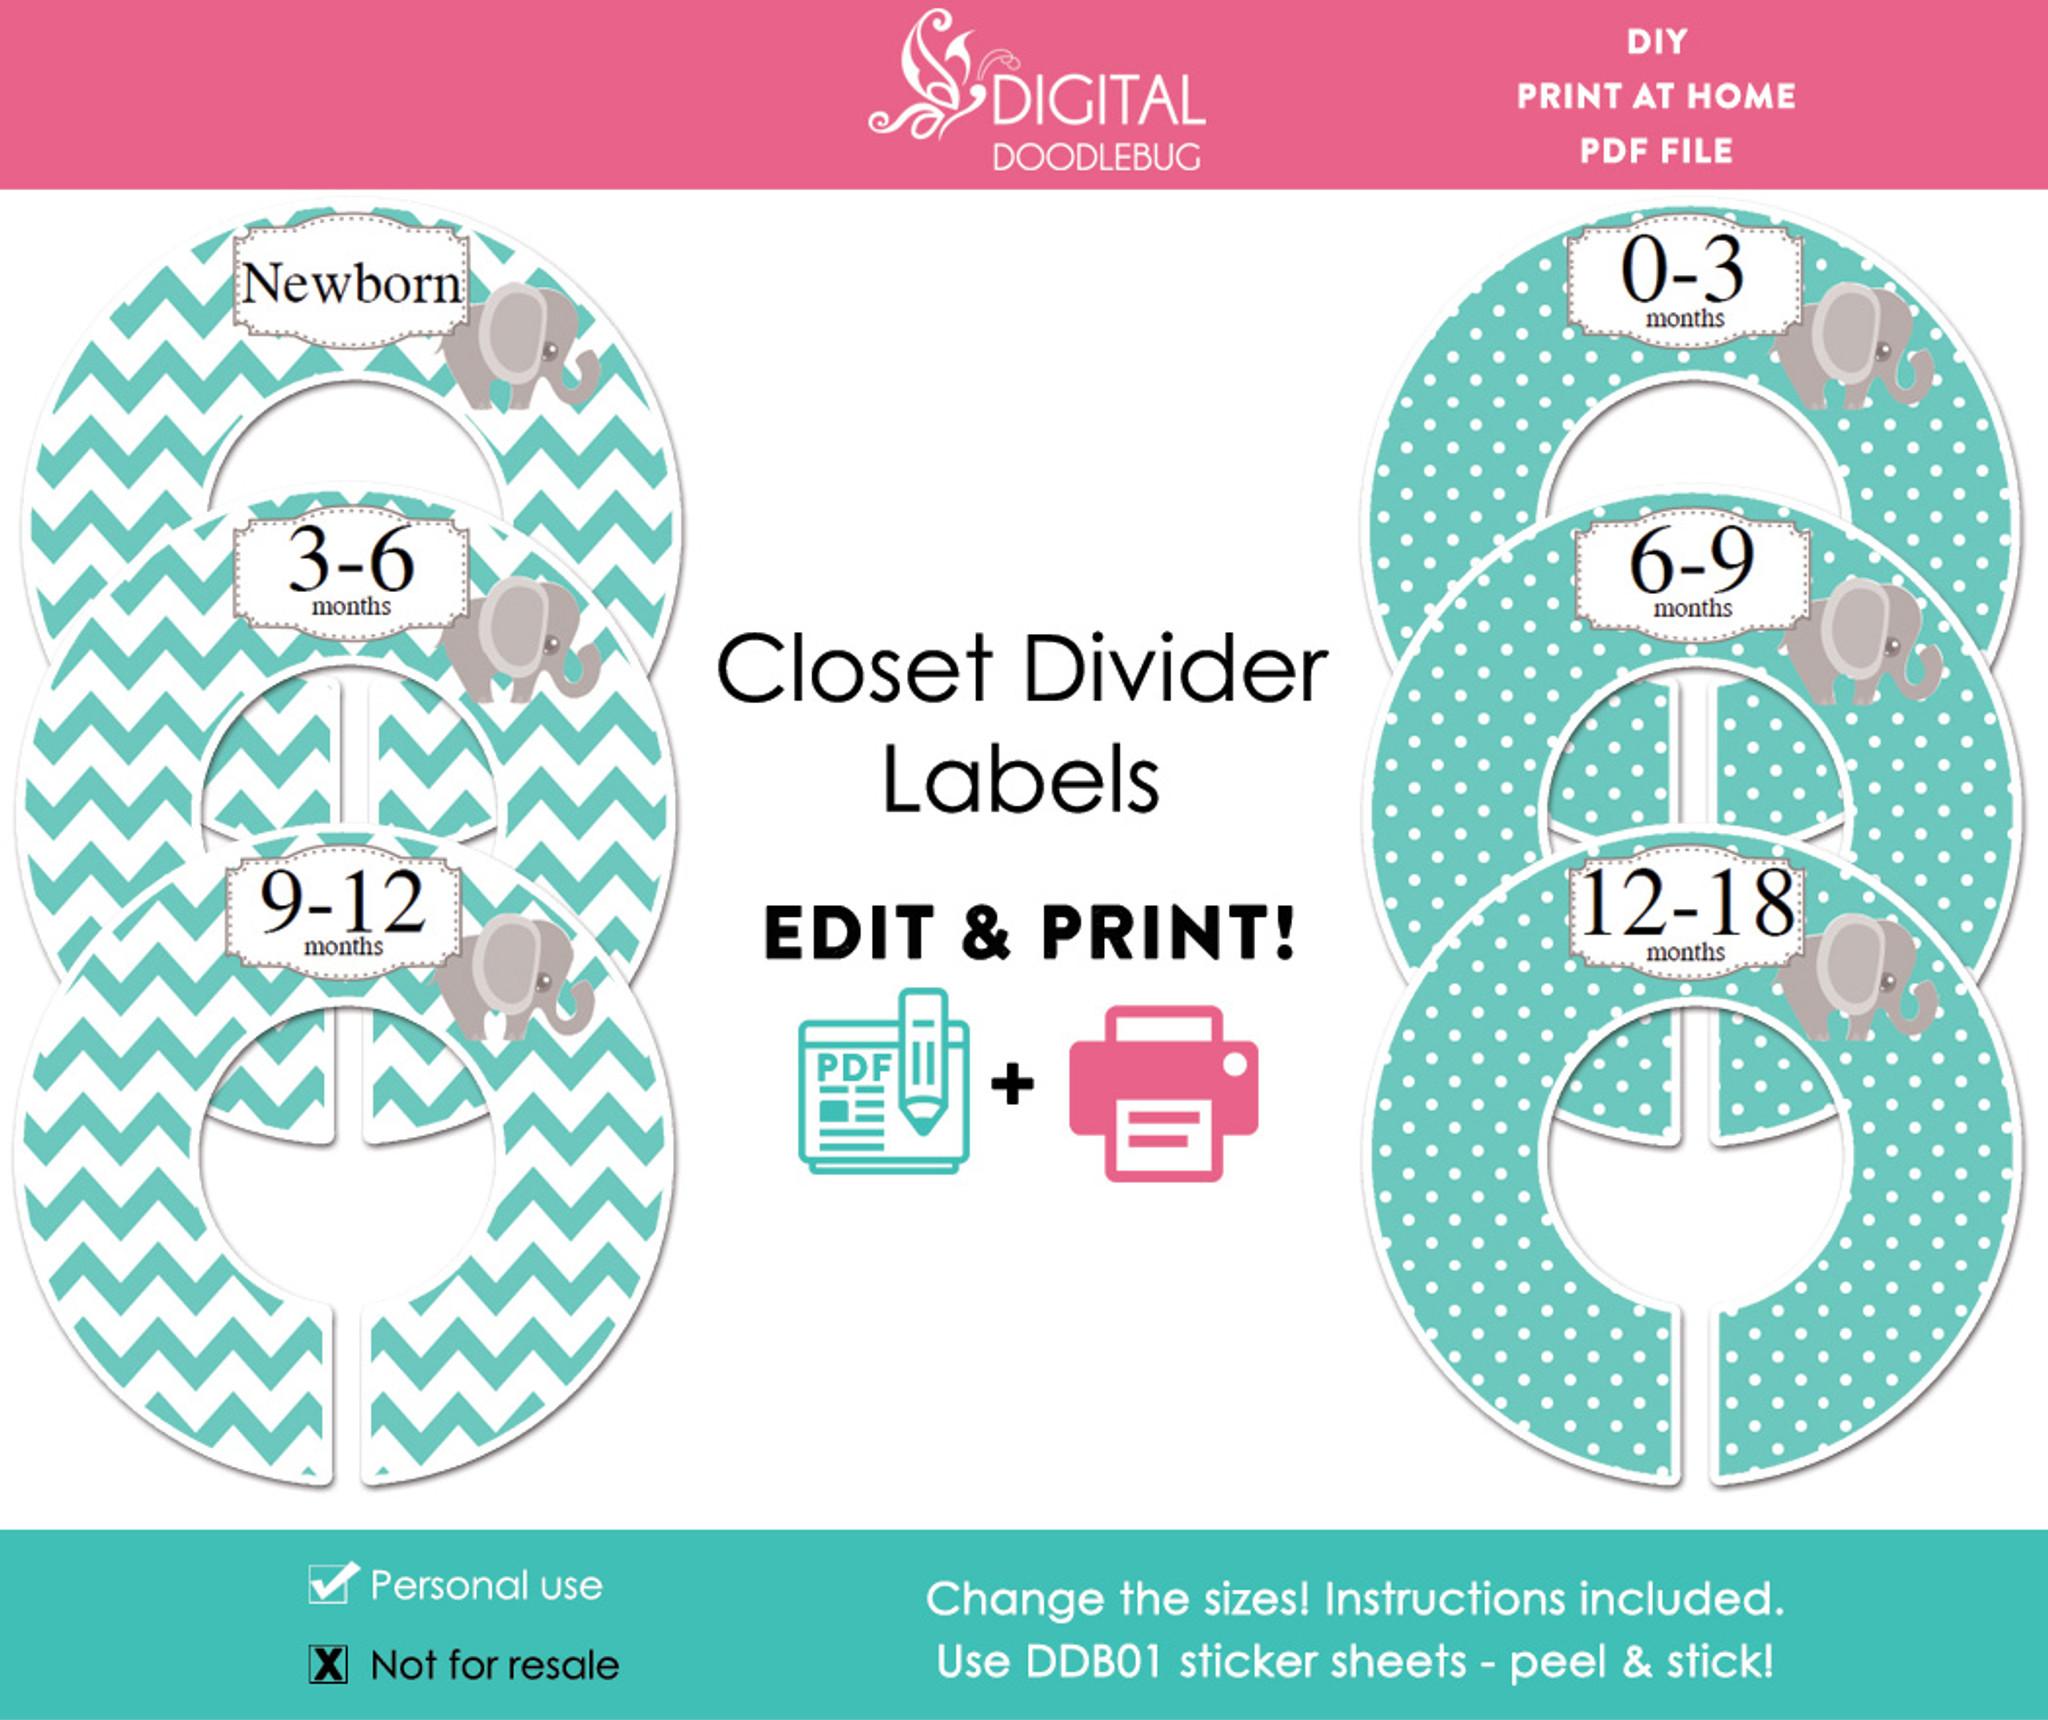 photograph relating to Printable Closet Dividers titled Turquoise Elephant Printable Closet Dividers